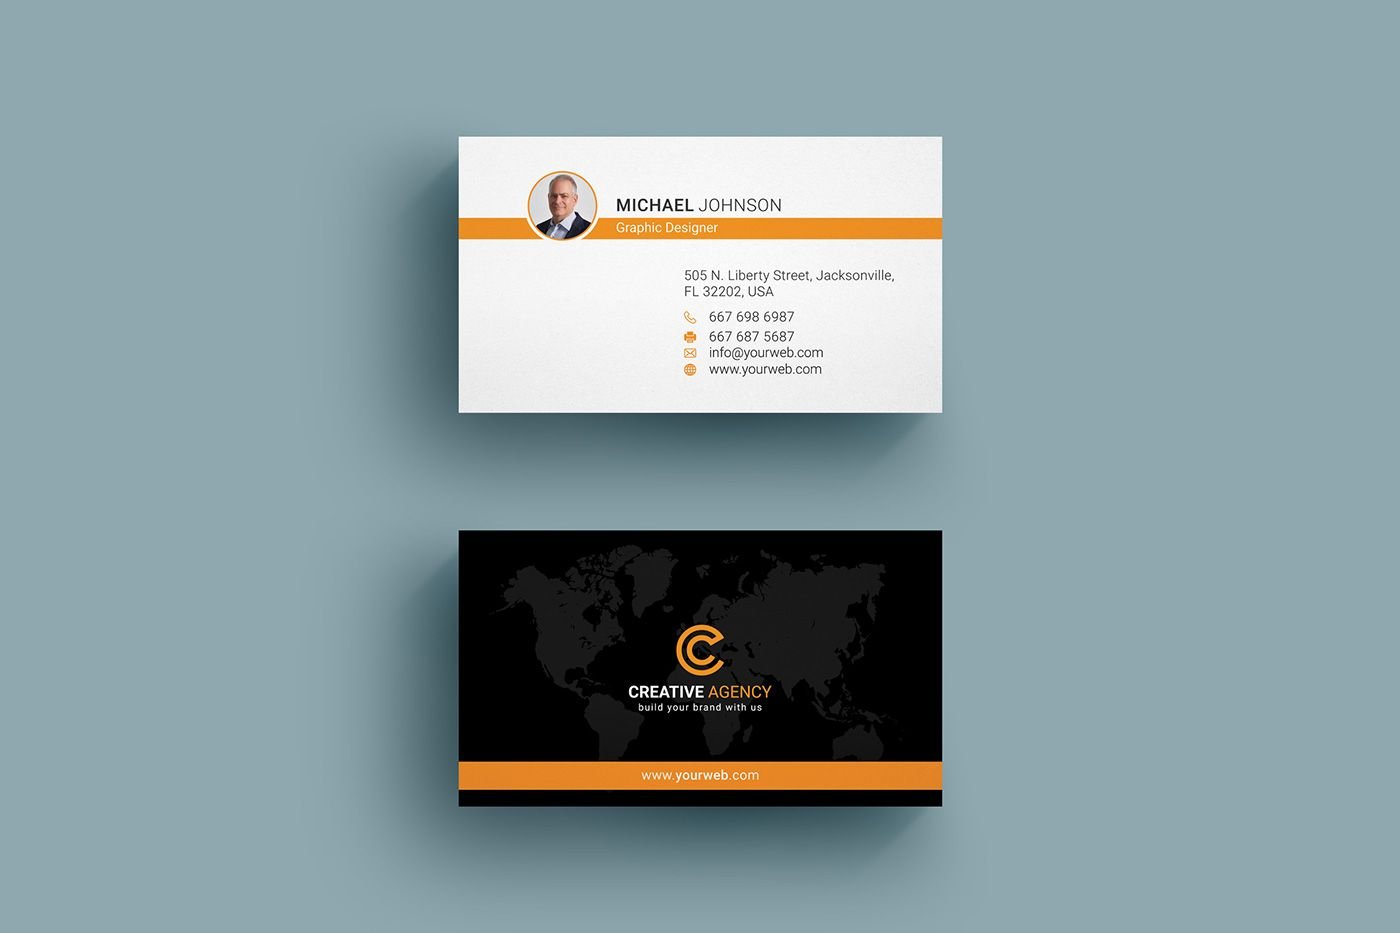 Corporate business card design 01 on behance desgin pinterest corporate business card design 01 on behance reheart Choice Image